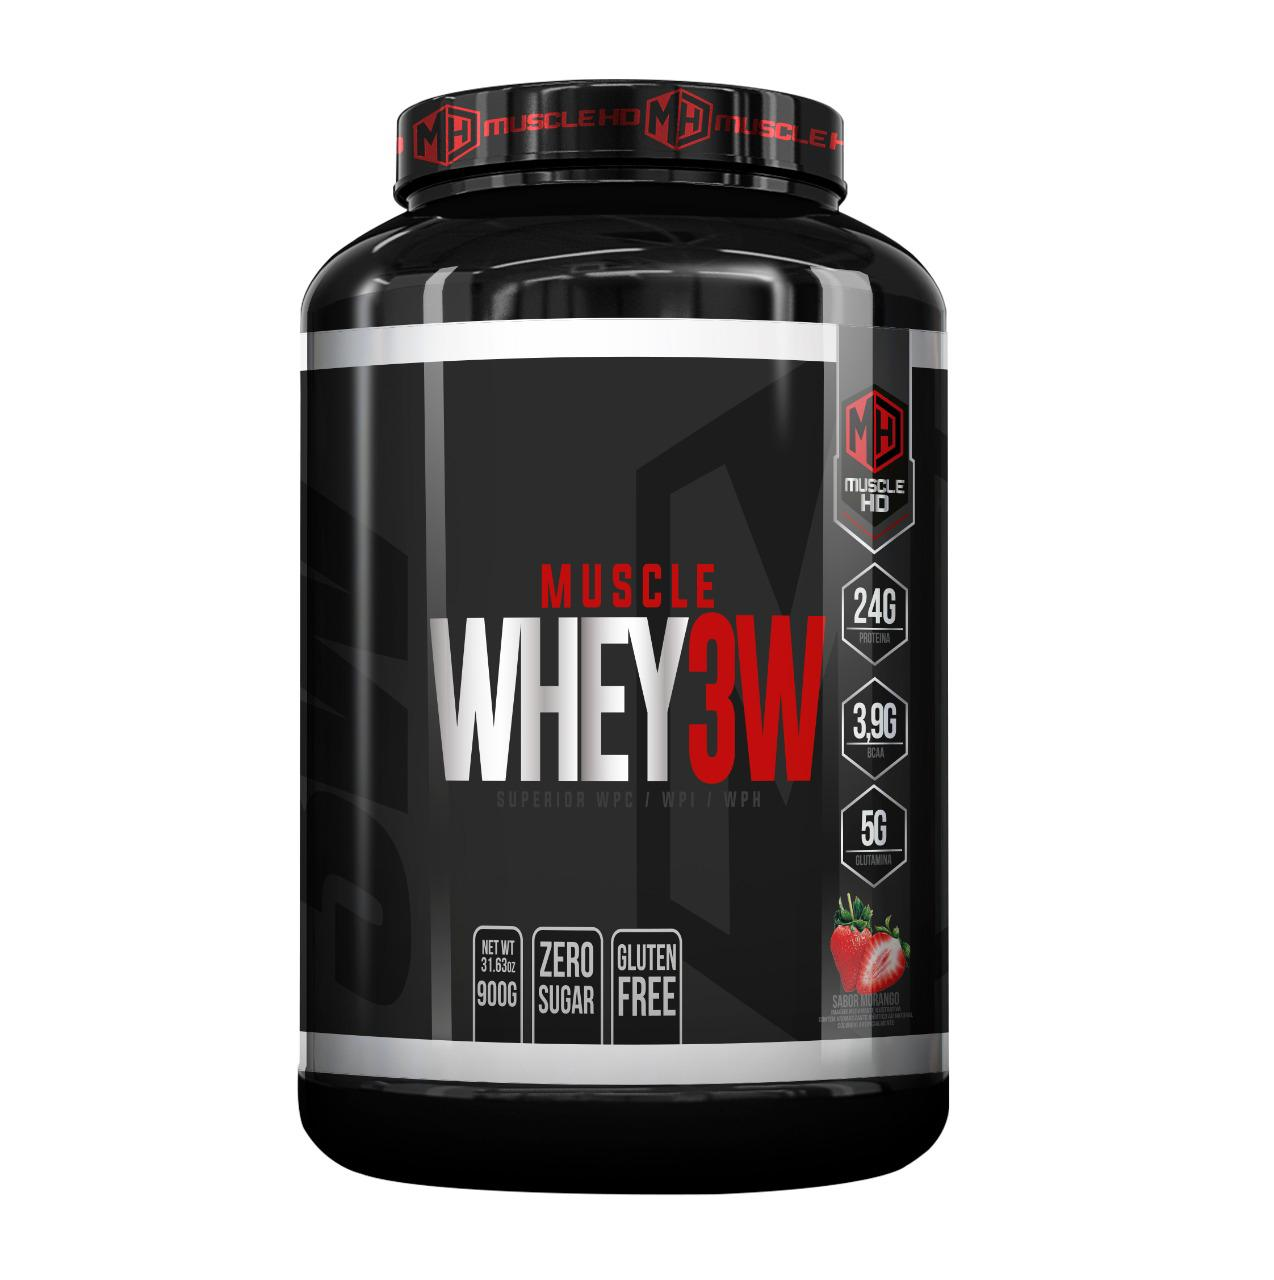 WHEY 3W 900g - MUSCLE HD